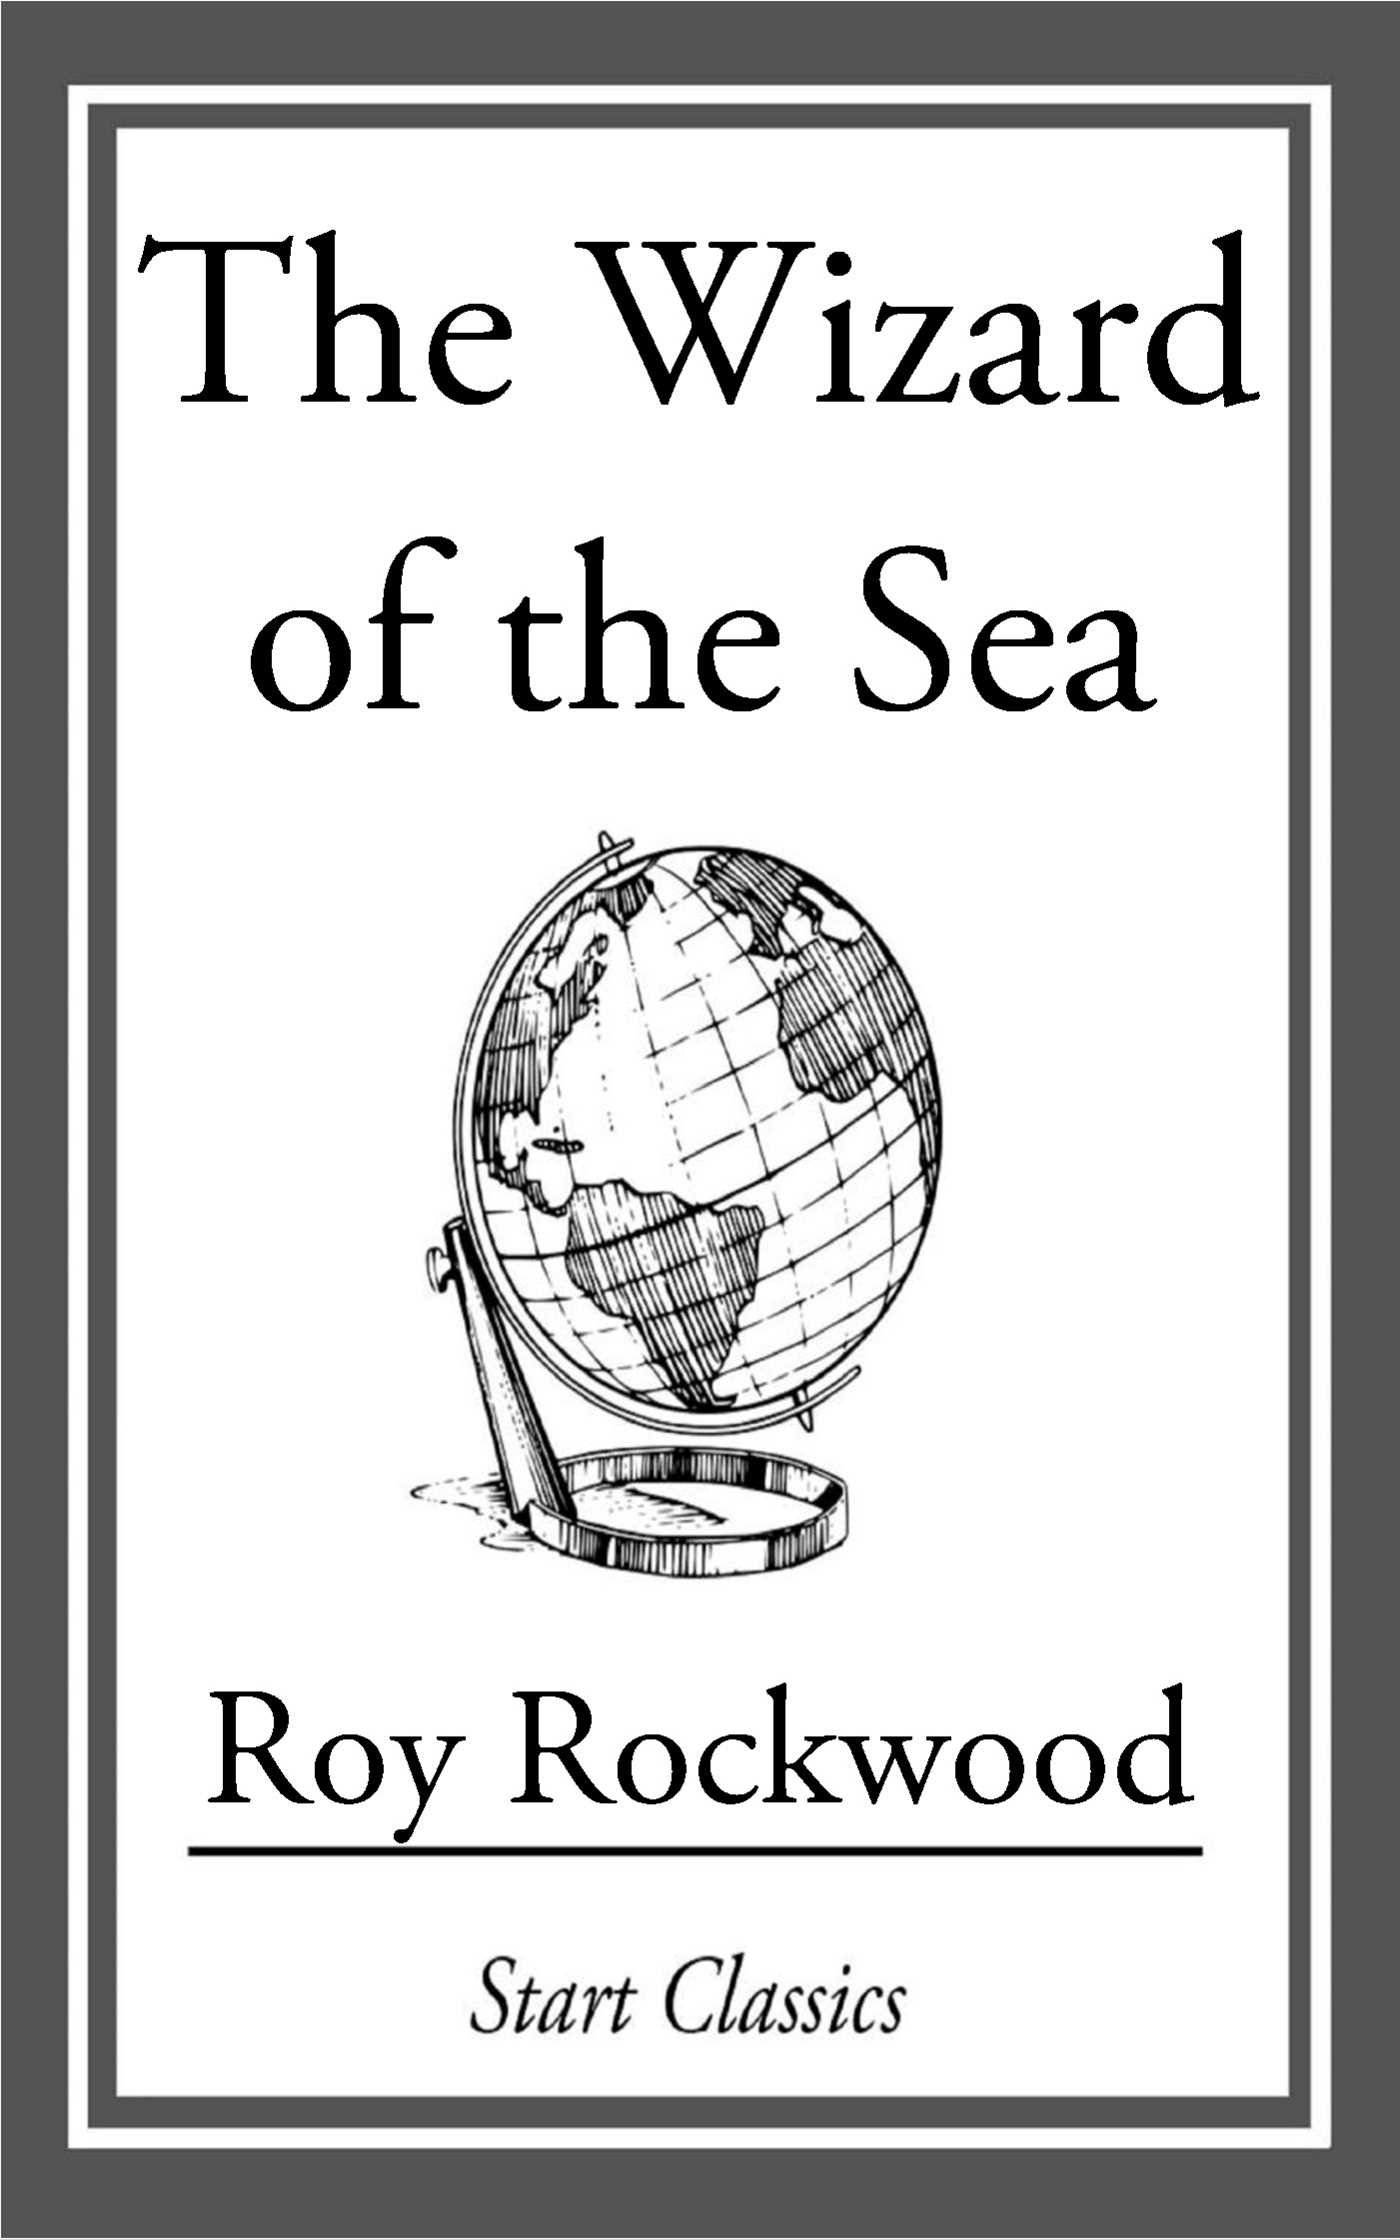 Wizard hd manual ebook manual ebook angelayu us array the wizard of the sea ebook by roy rockwood official publisher rh simonandschuster co fandeluxe Images